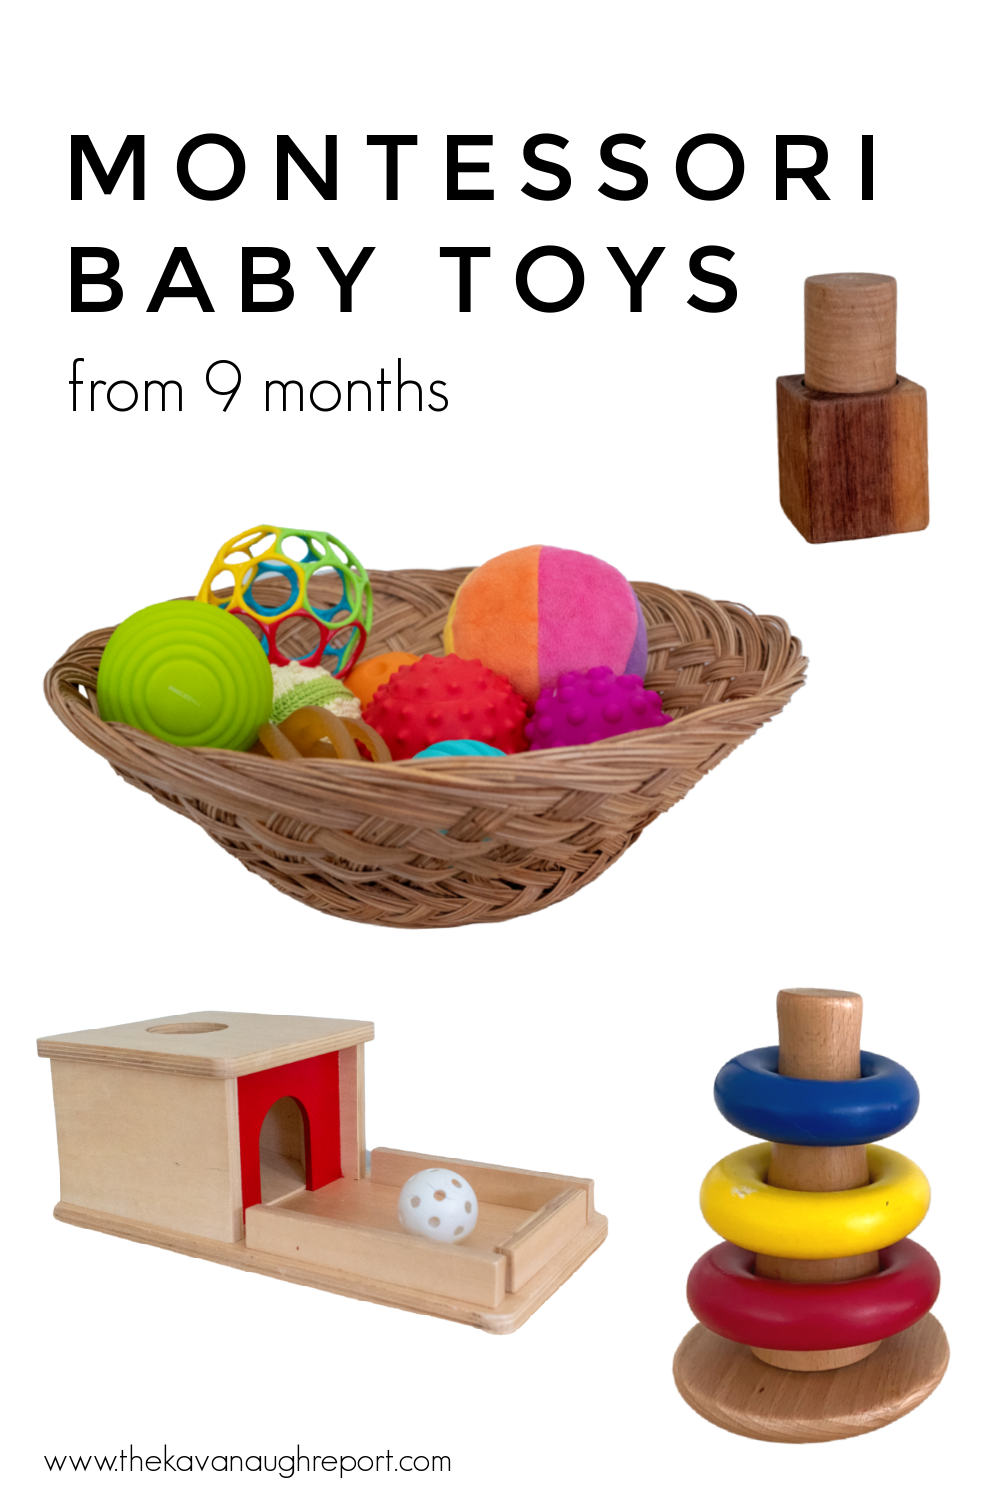 Montessori baby toys for 9 and 10 month olds. These educational and engaging toys are perfect for families looking for baby activities.